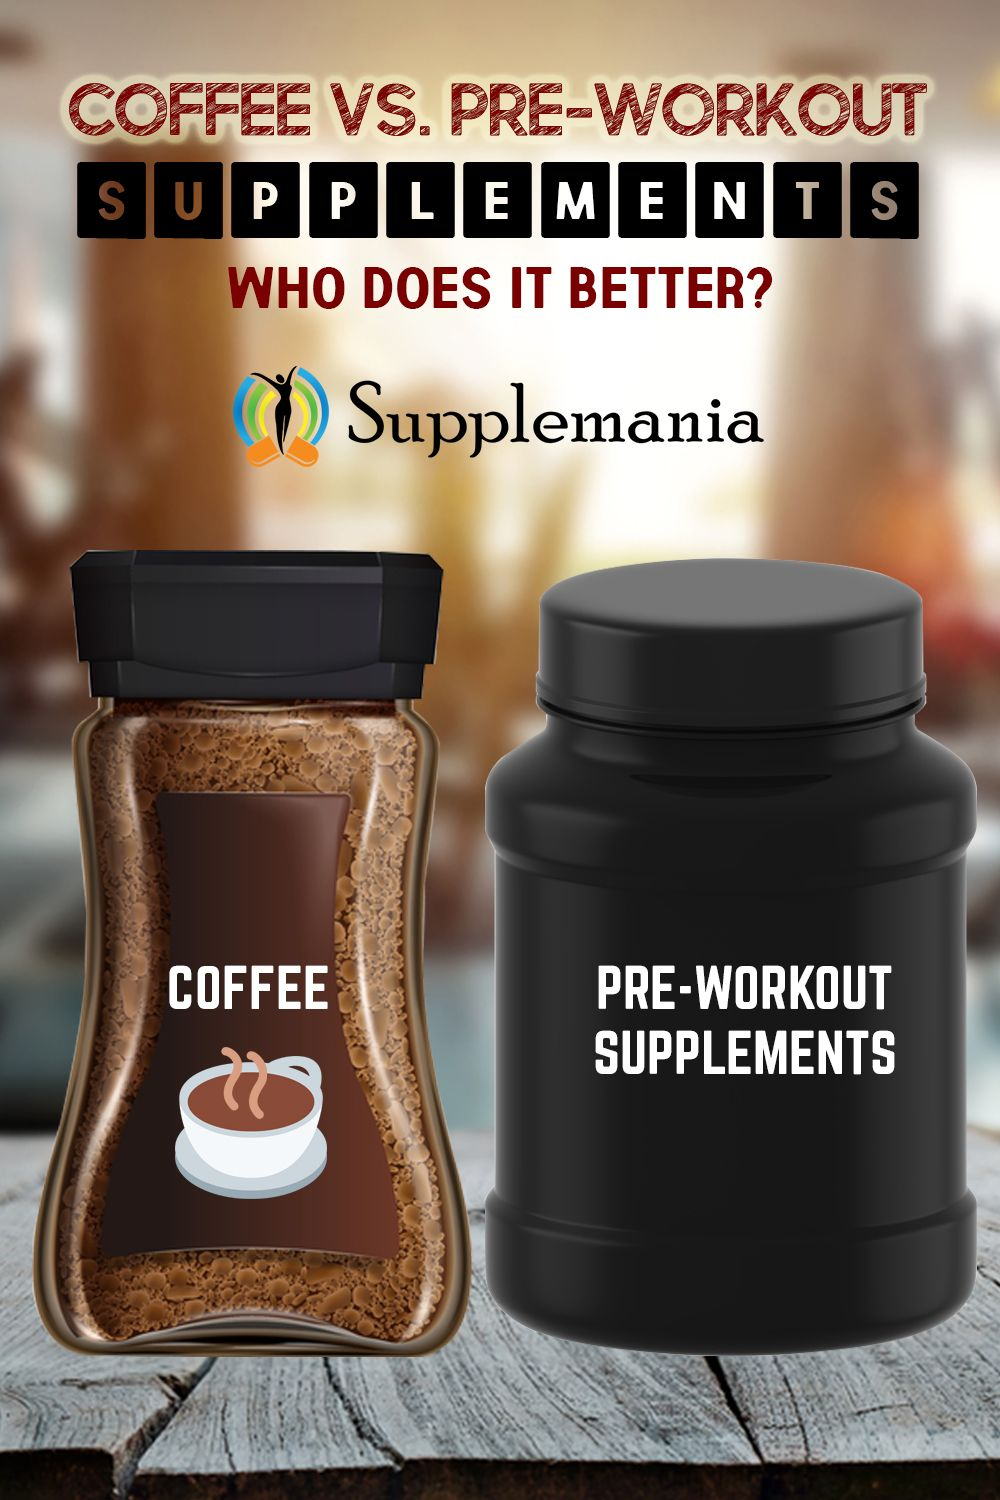 Coffee vs preworkout supplements who does it better